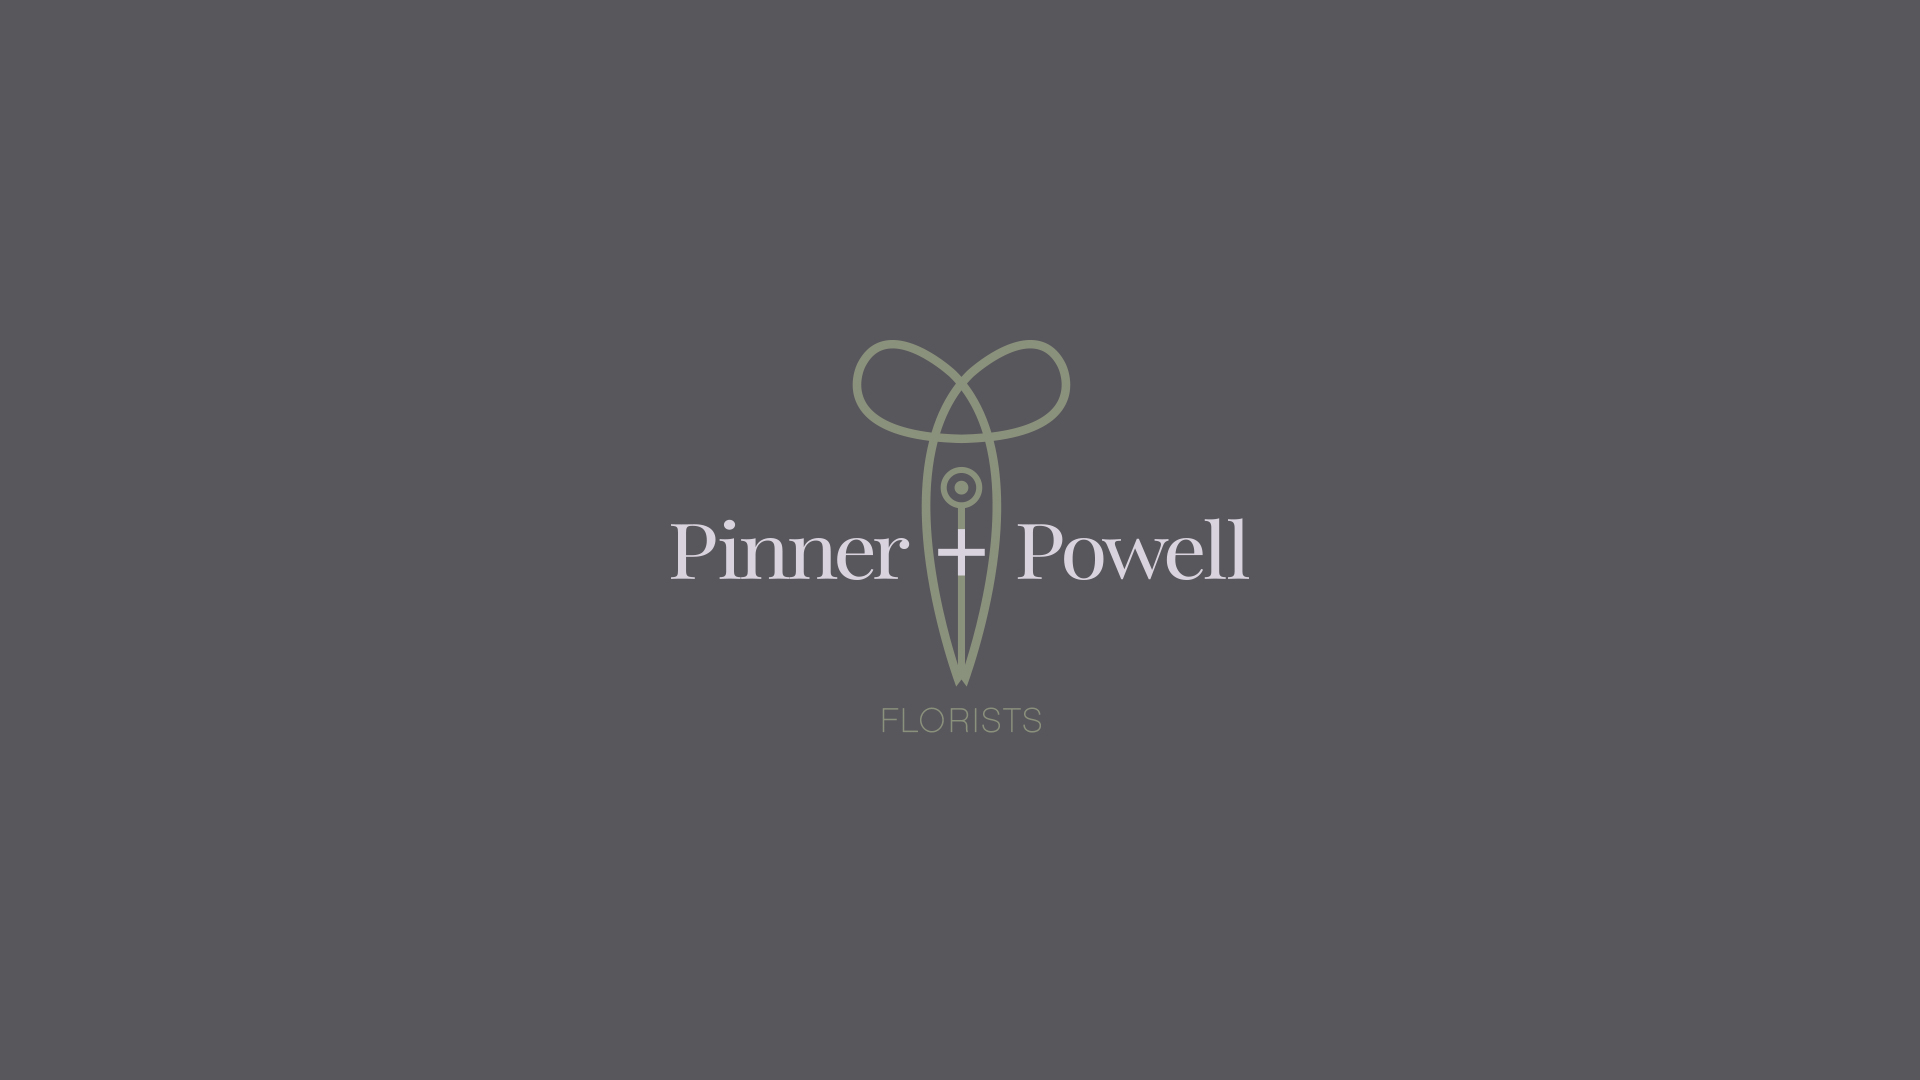 pinner powell logo design